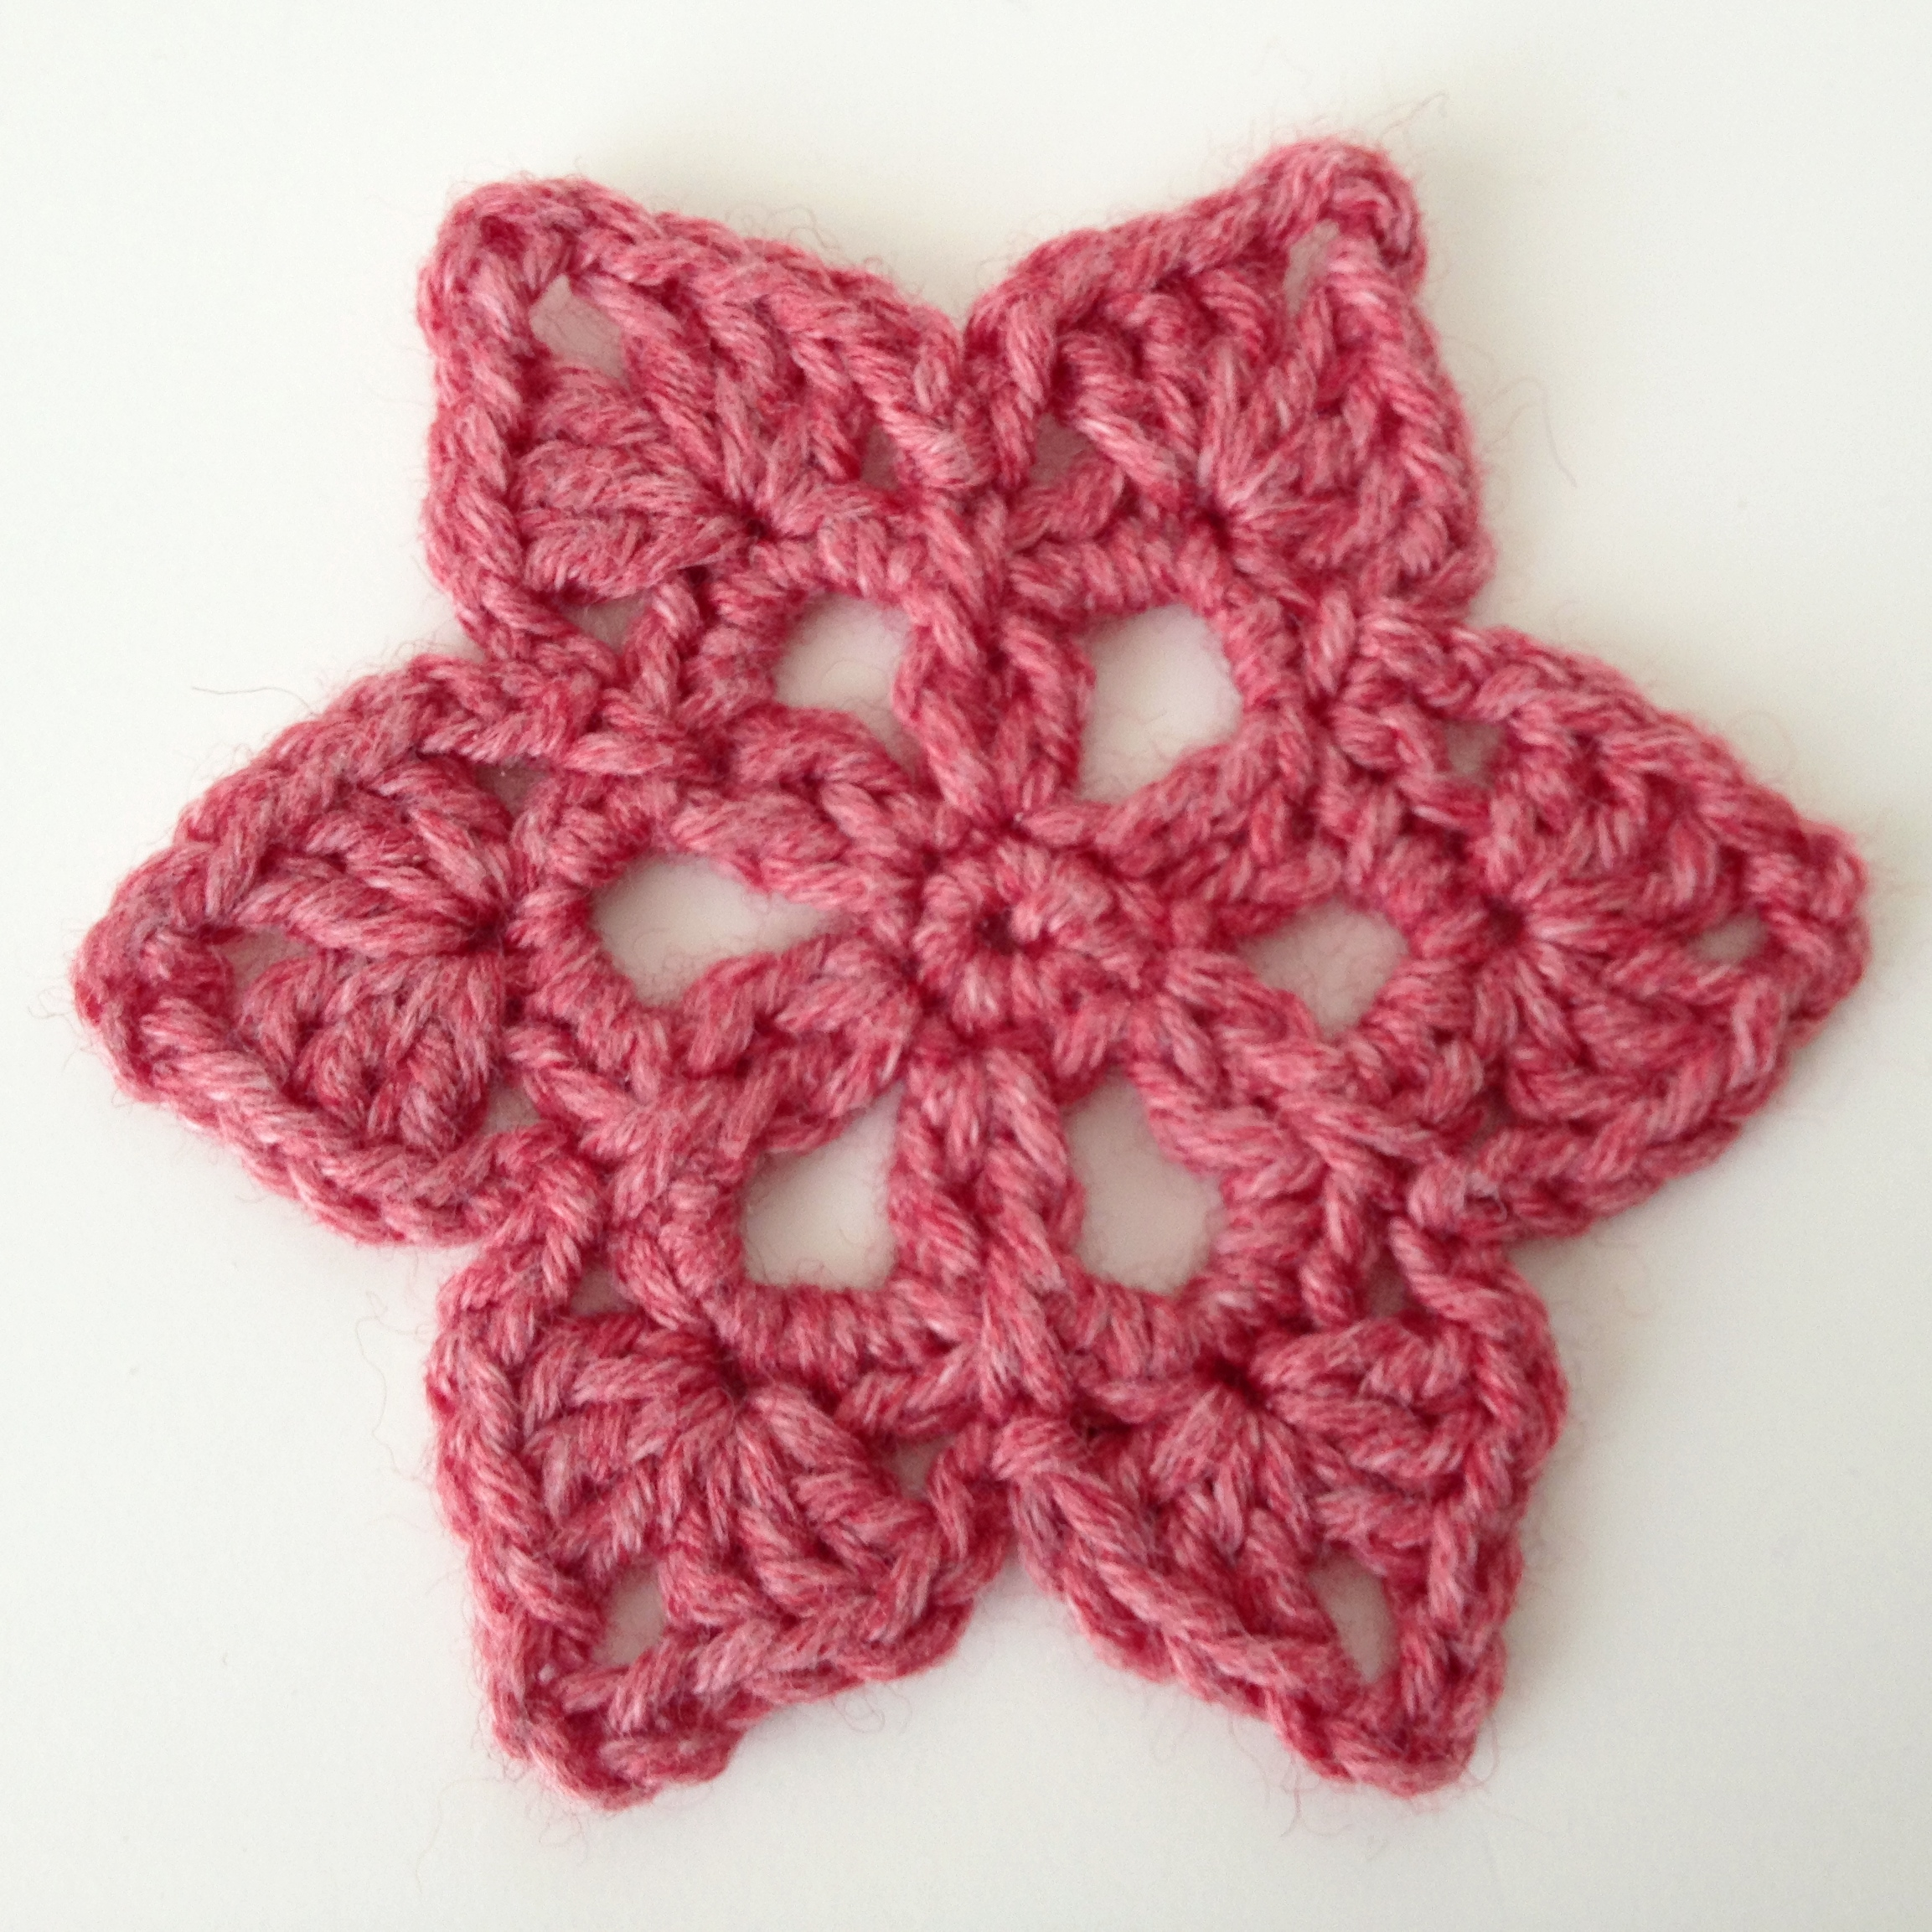 Www Crochet : Crochet motif #36 from the book ?Beyond the square Crochet motifs?